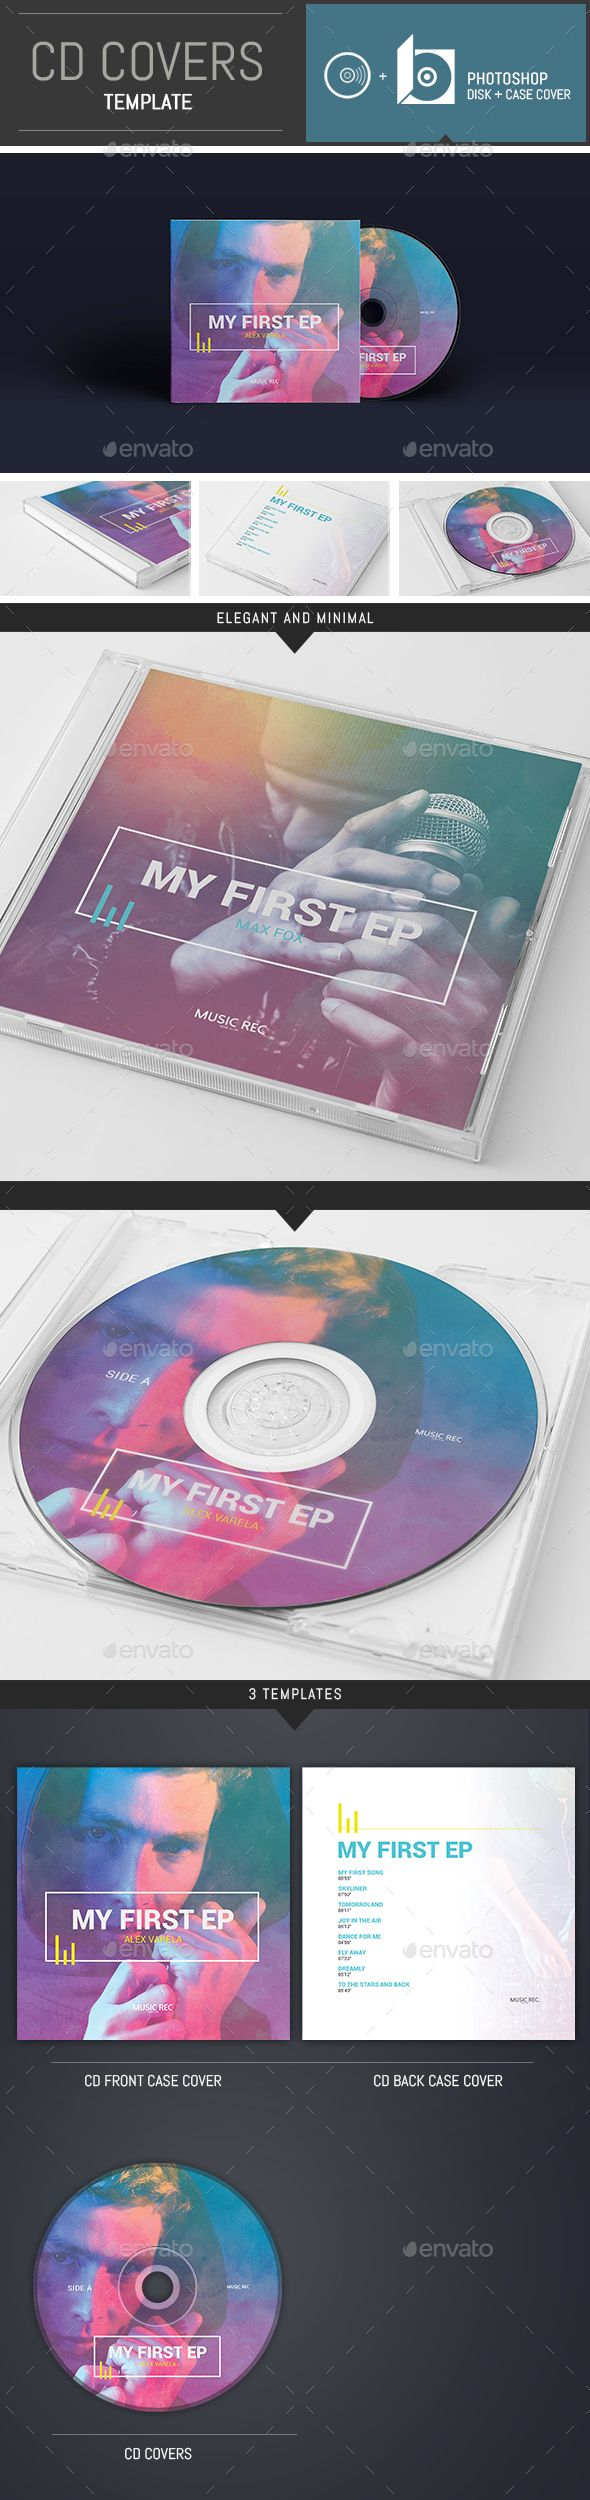 DJ / Musician / Band CD Cover Template - #CD & #DVD Artwork Print Templates